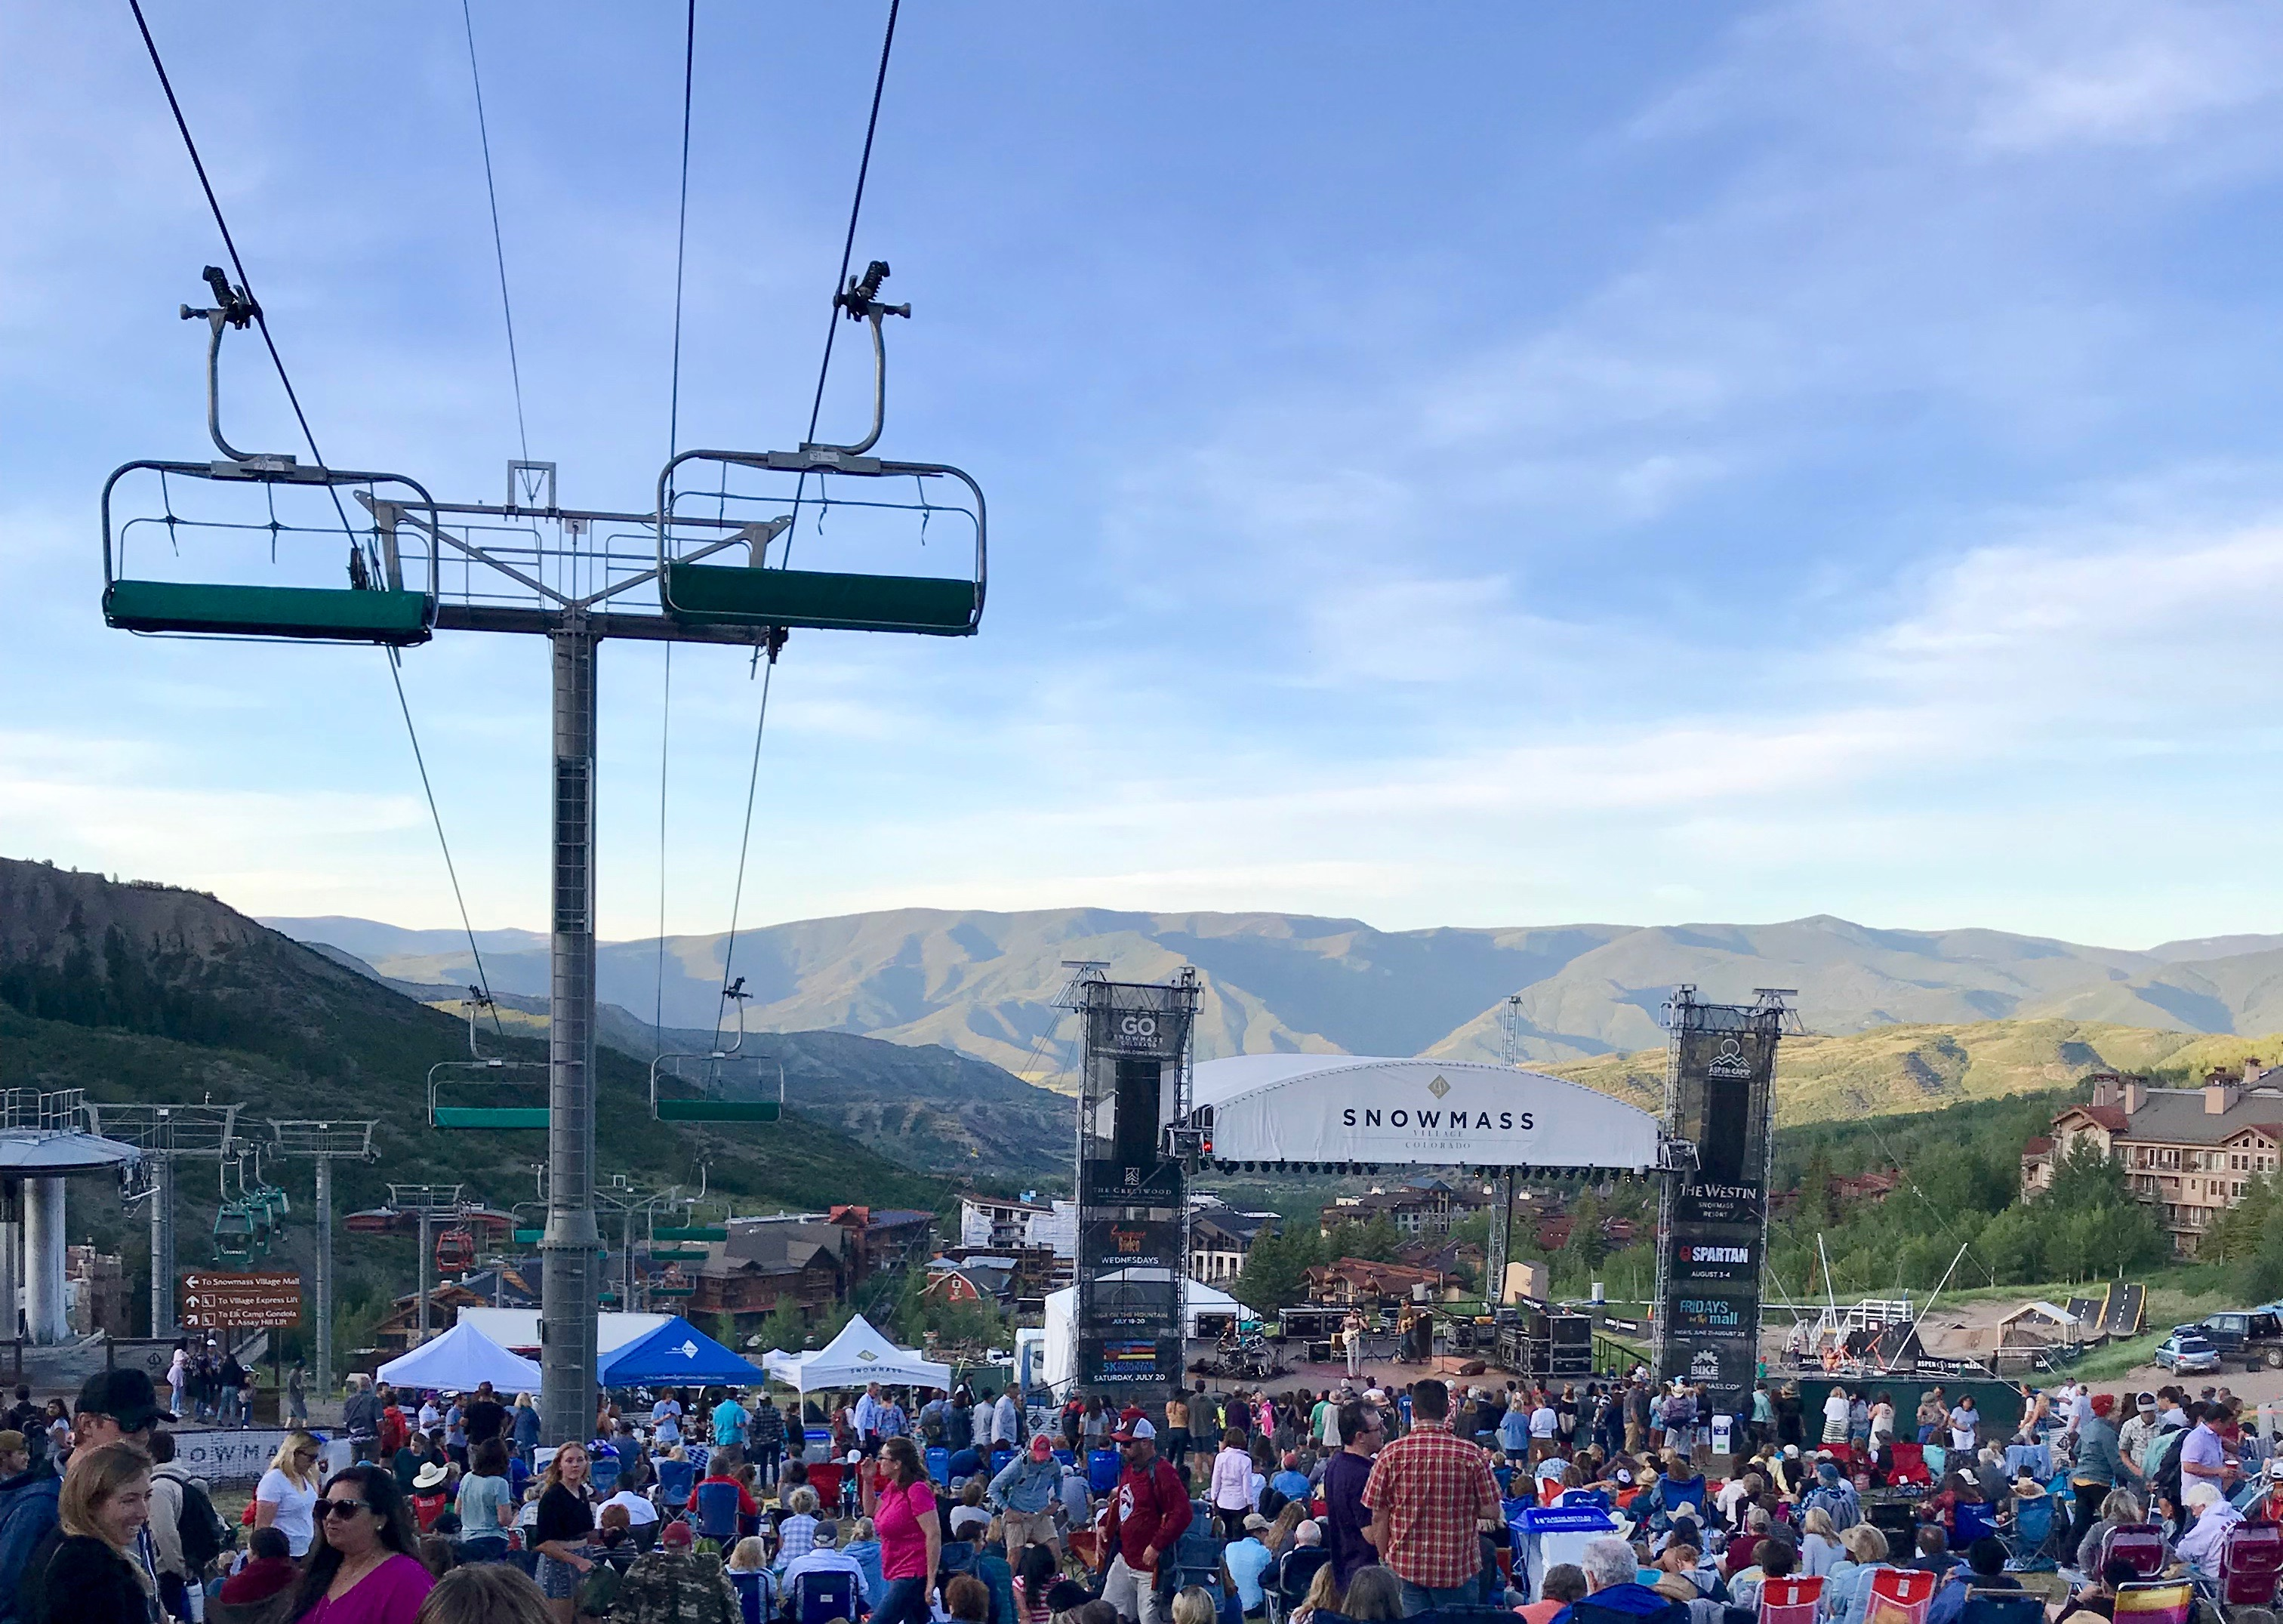 Snowmass in summer